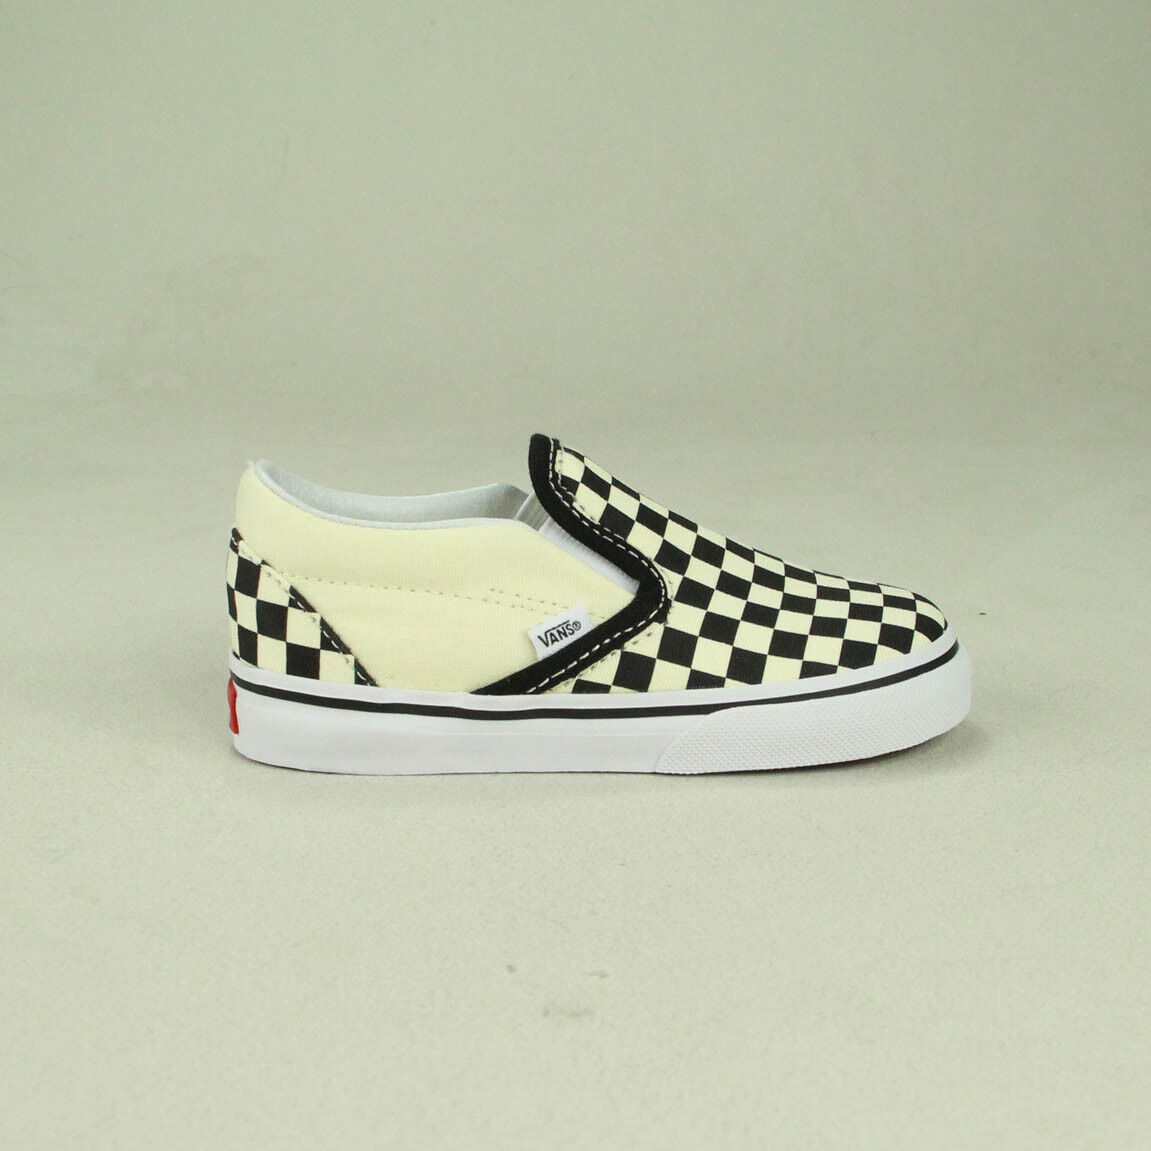 f6dad1980a7f Details about Vans Check Slip-On Toddlers Infants Trainer Black White Size  3.5